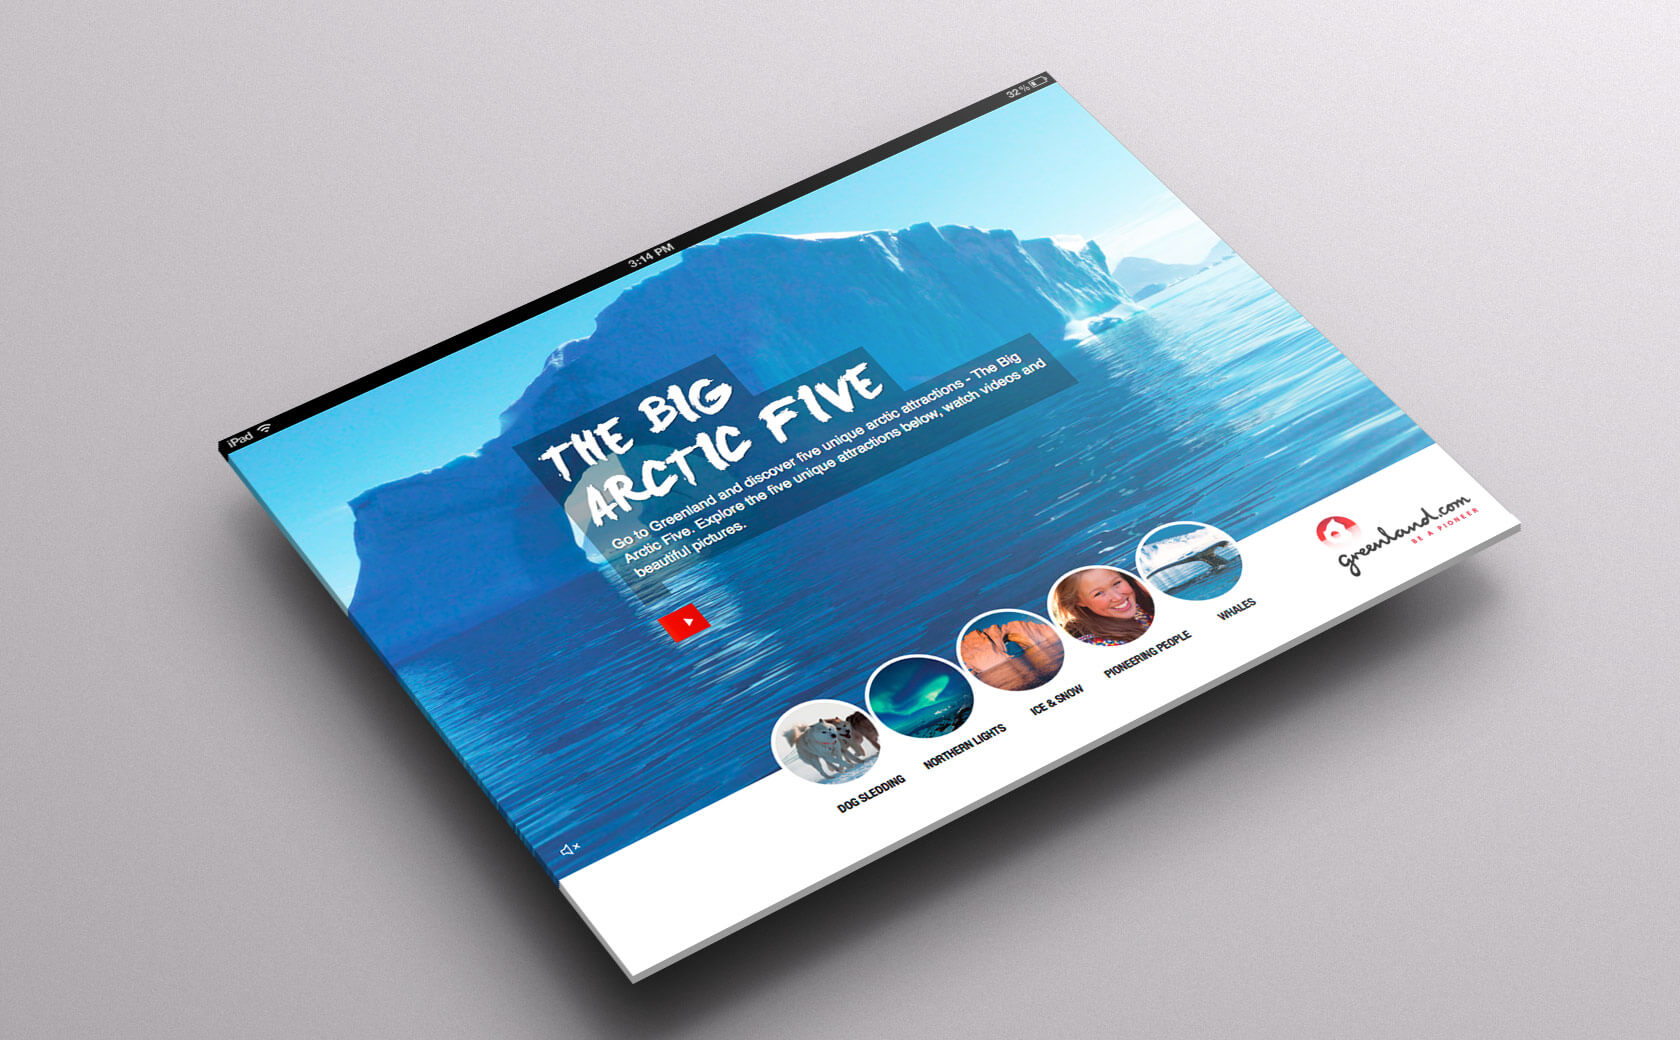 Big Arctic Five